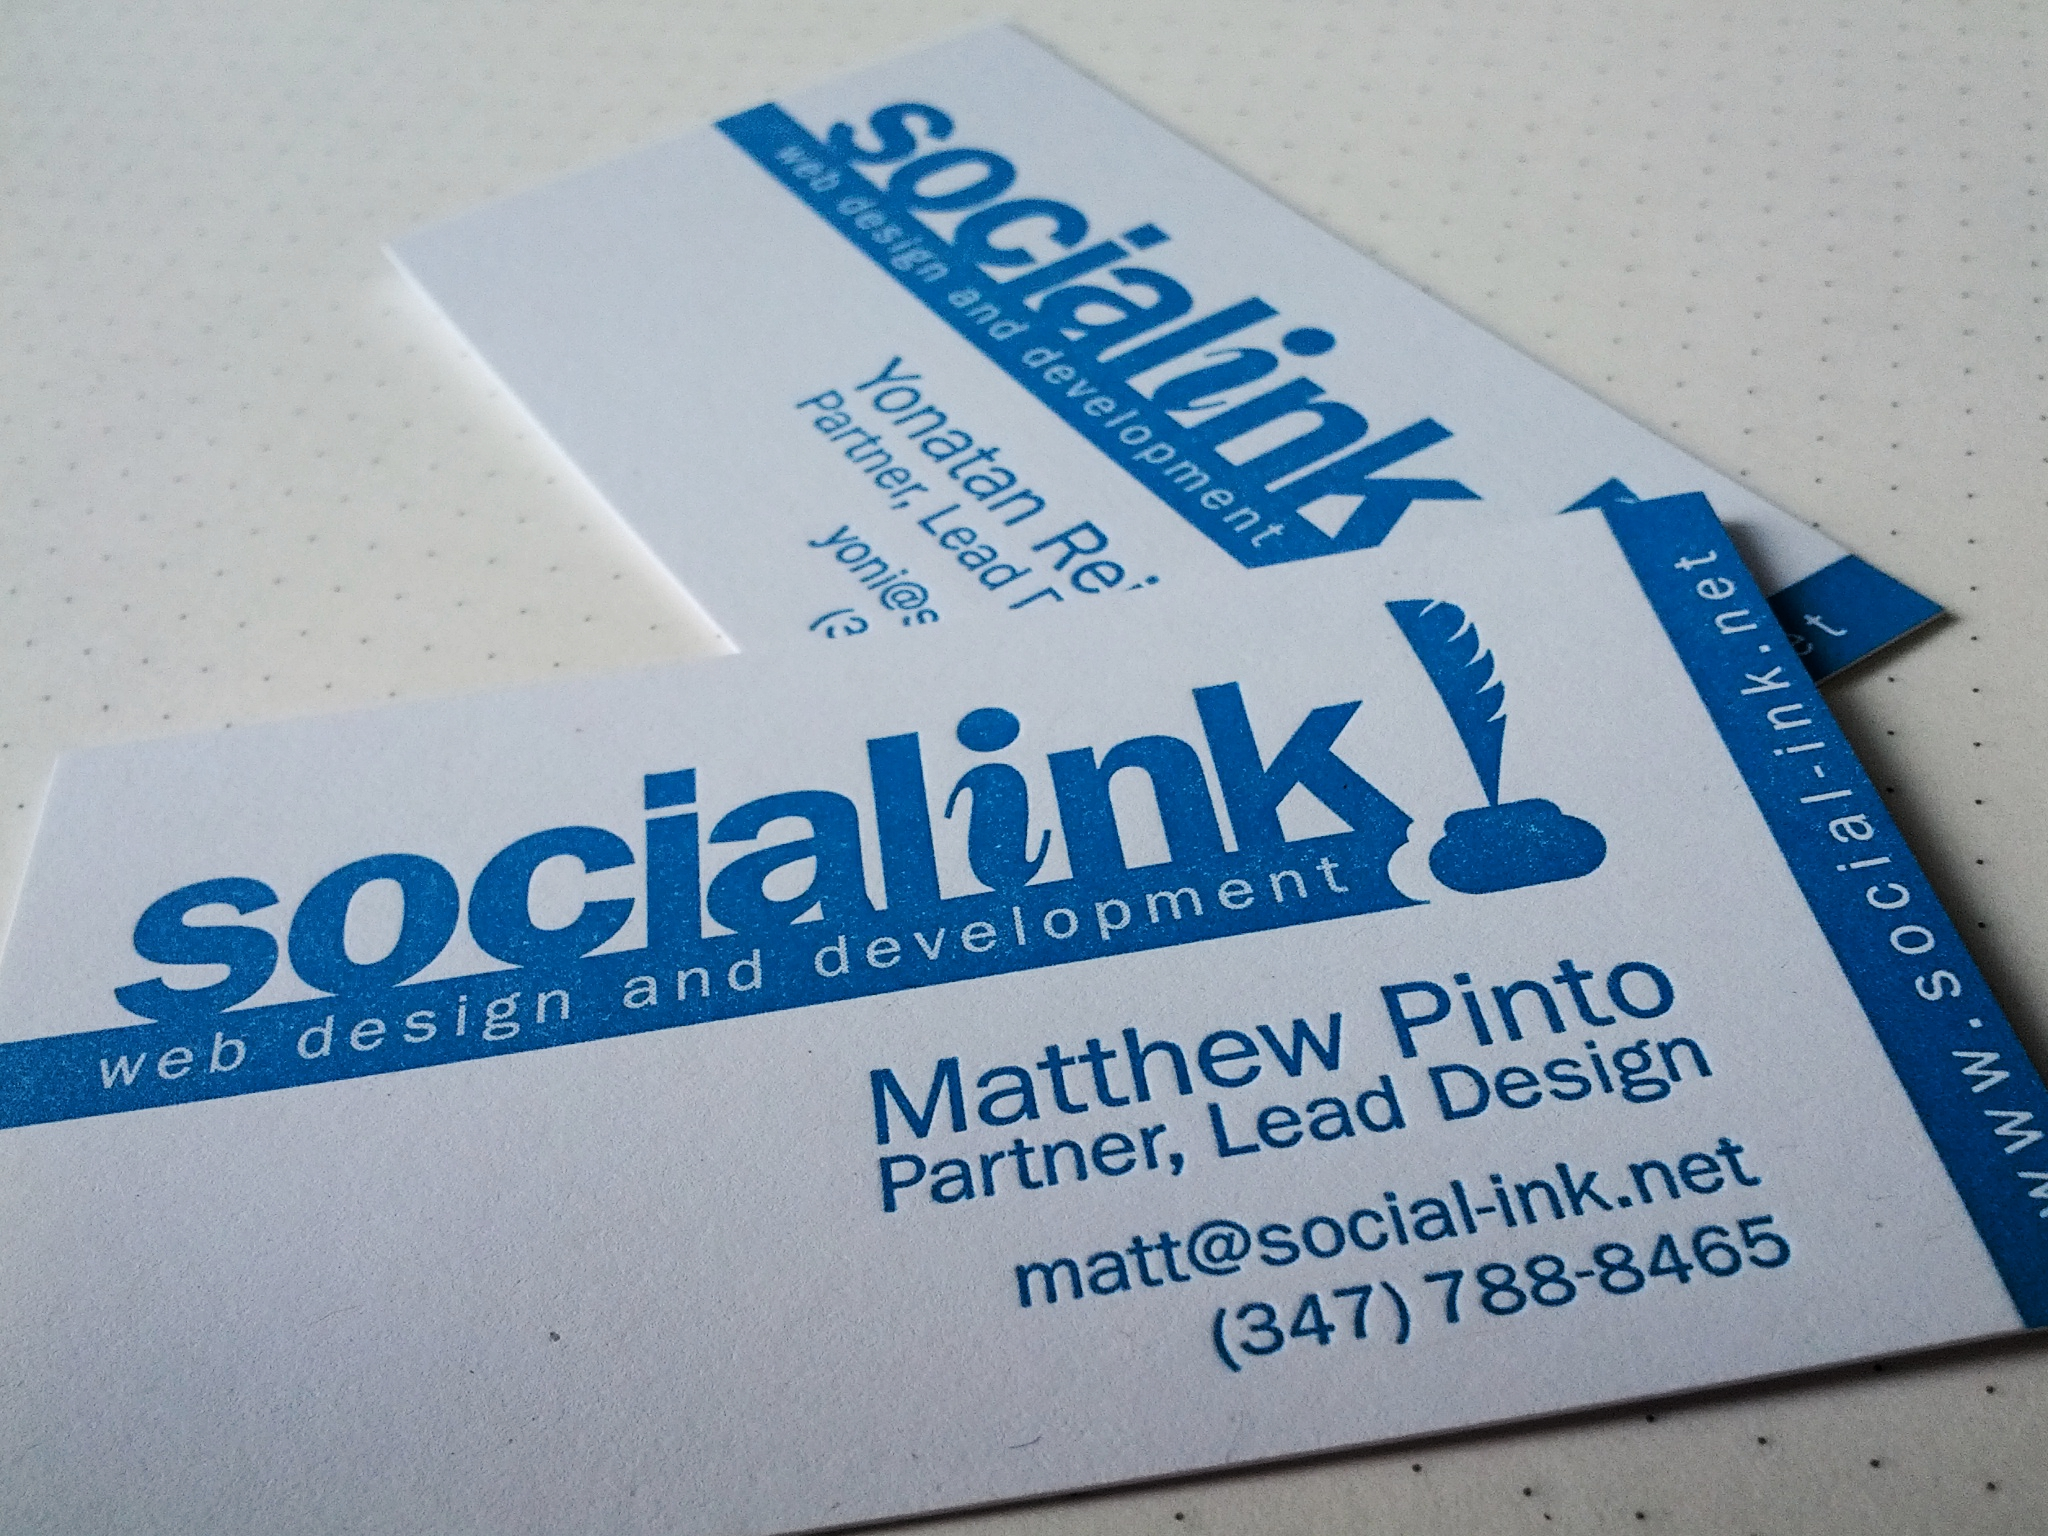 Our new business cards are here!